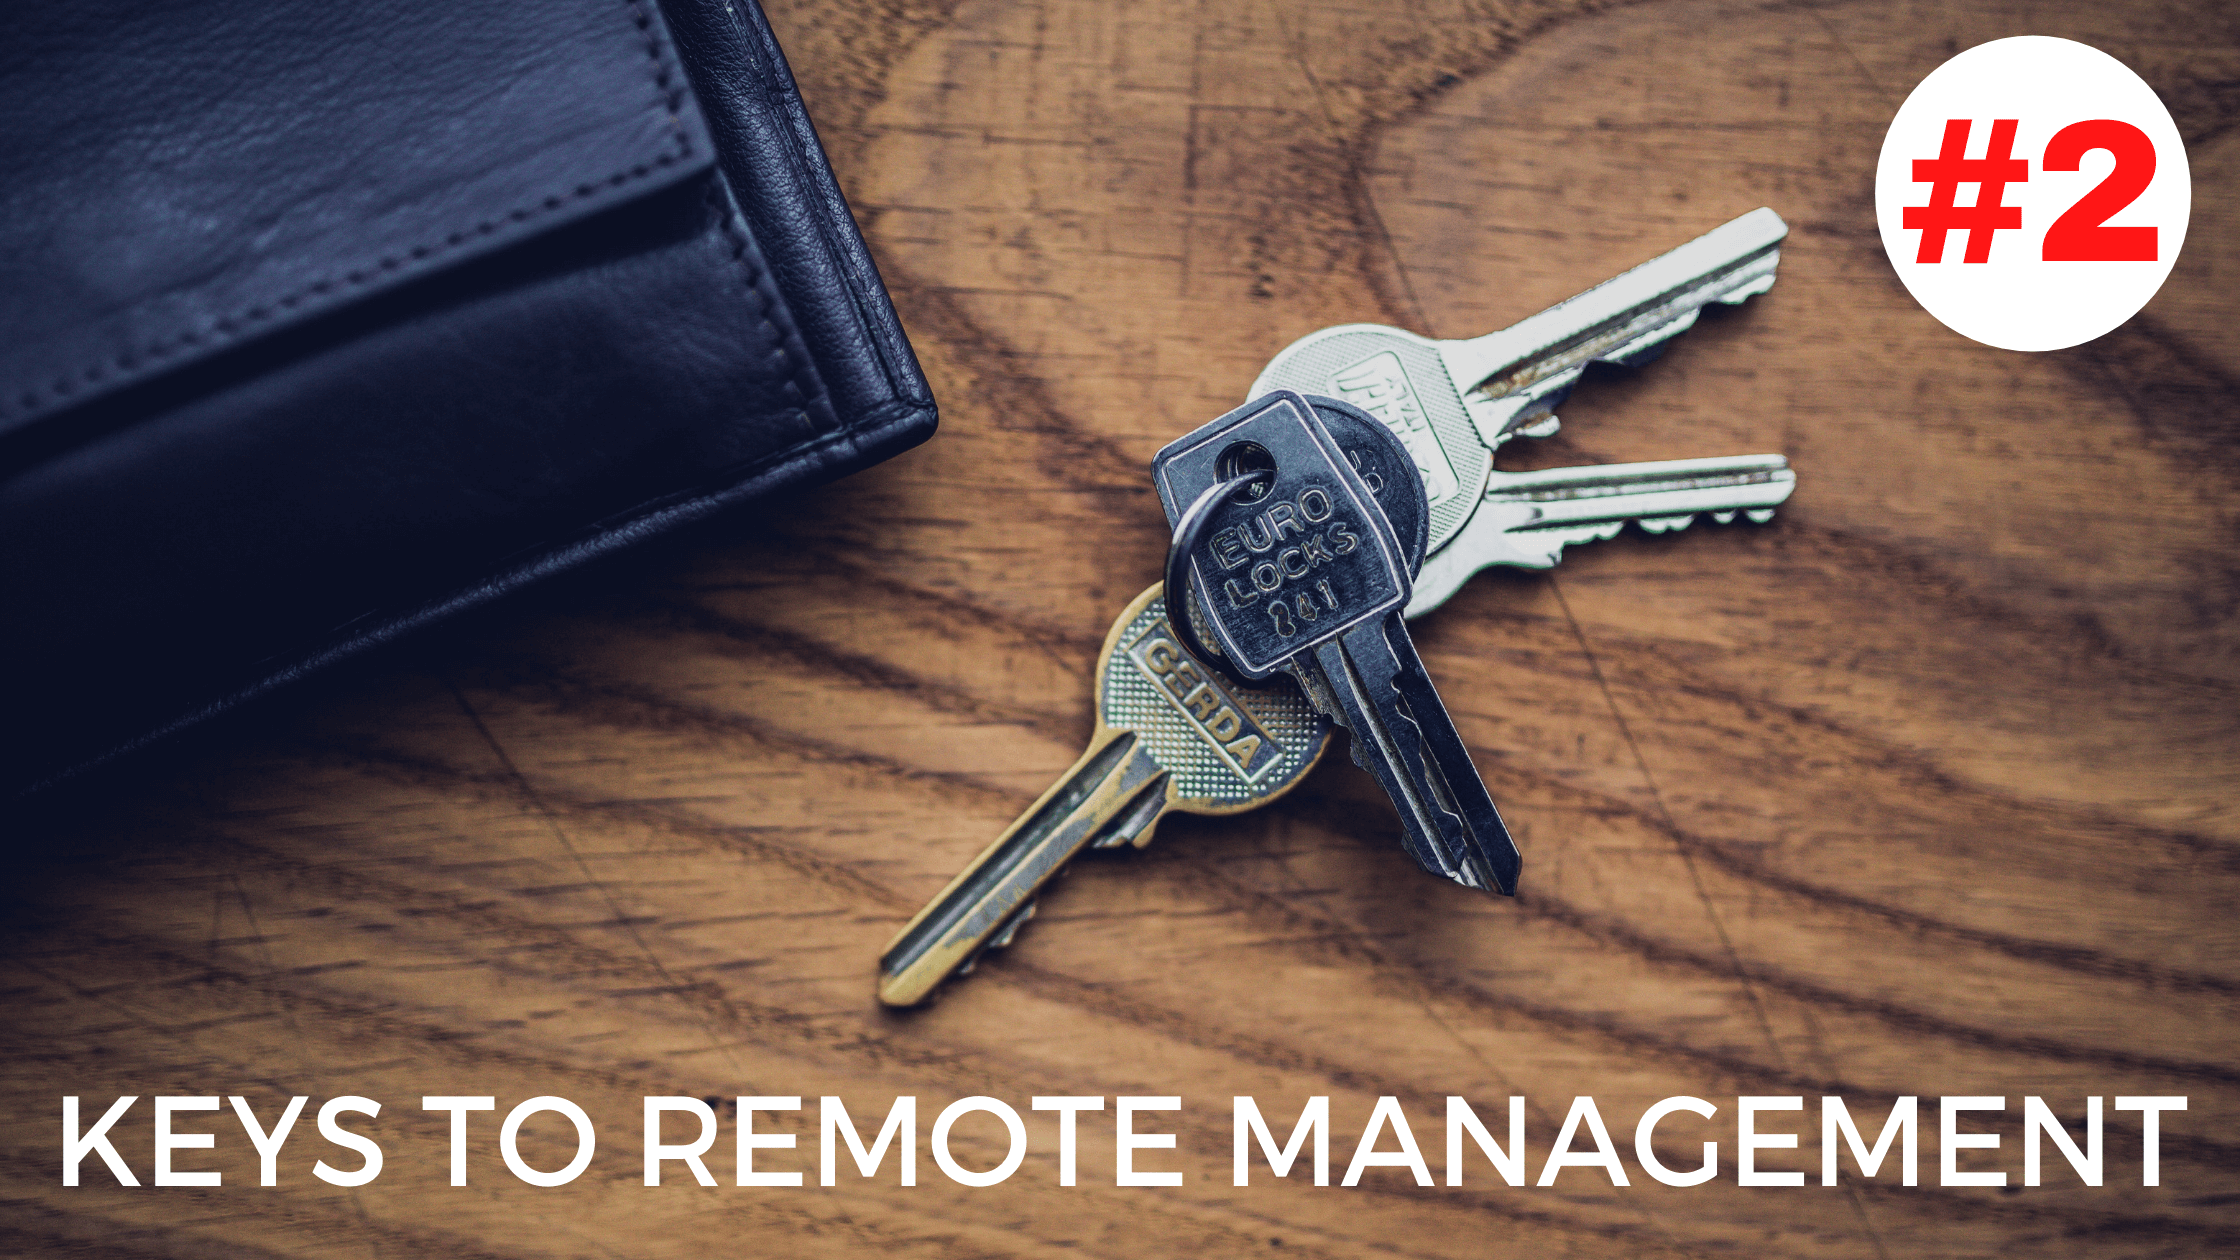 Keys To Remote Management – Key #2: Look Them In The Eyes